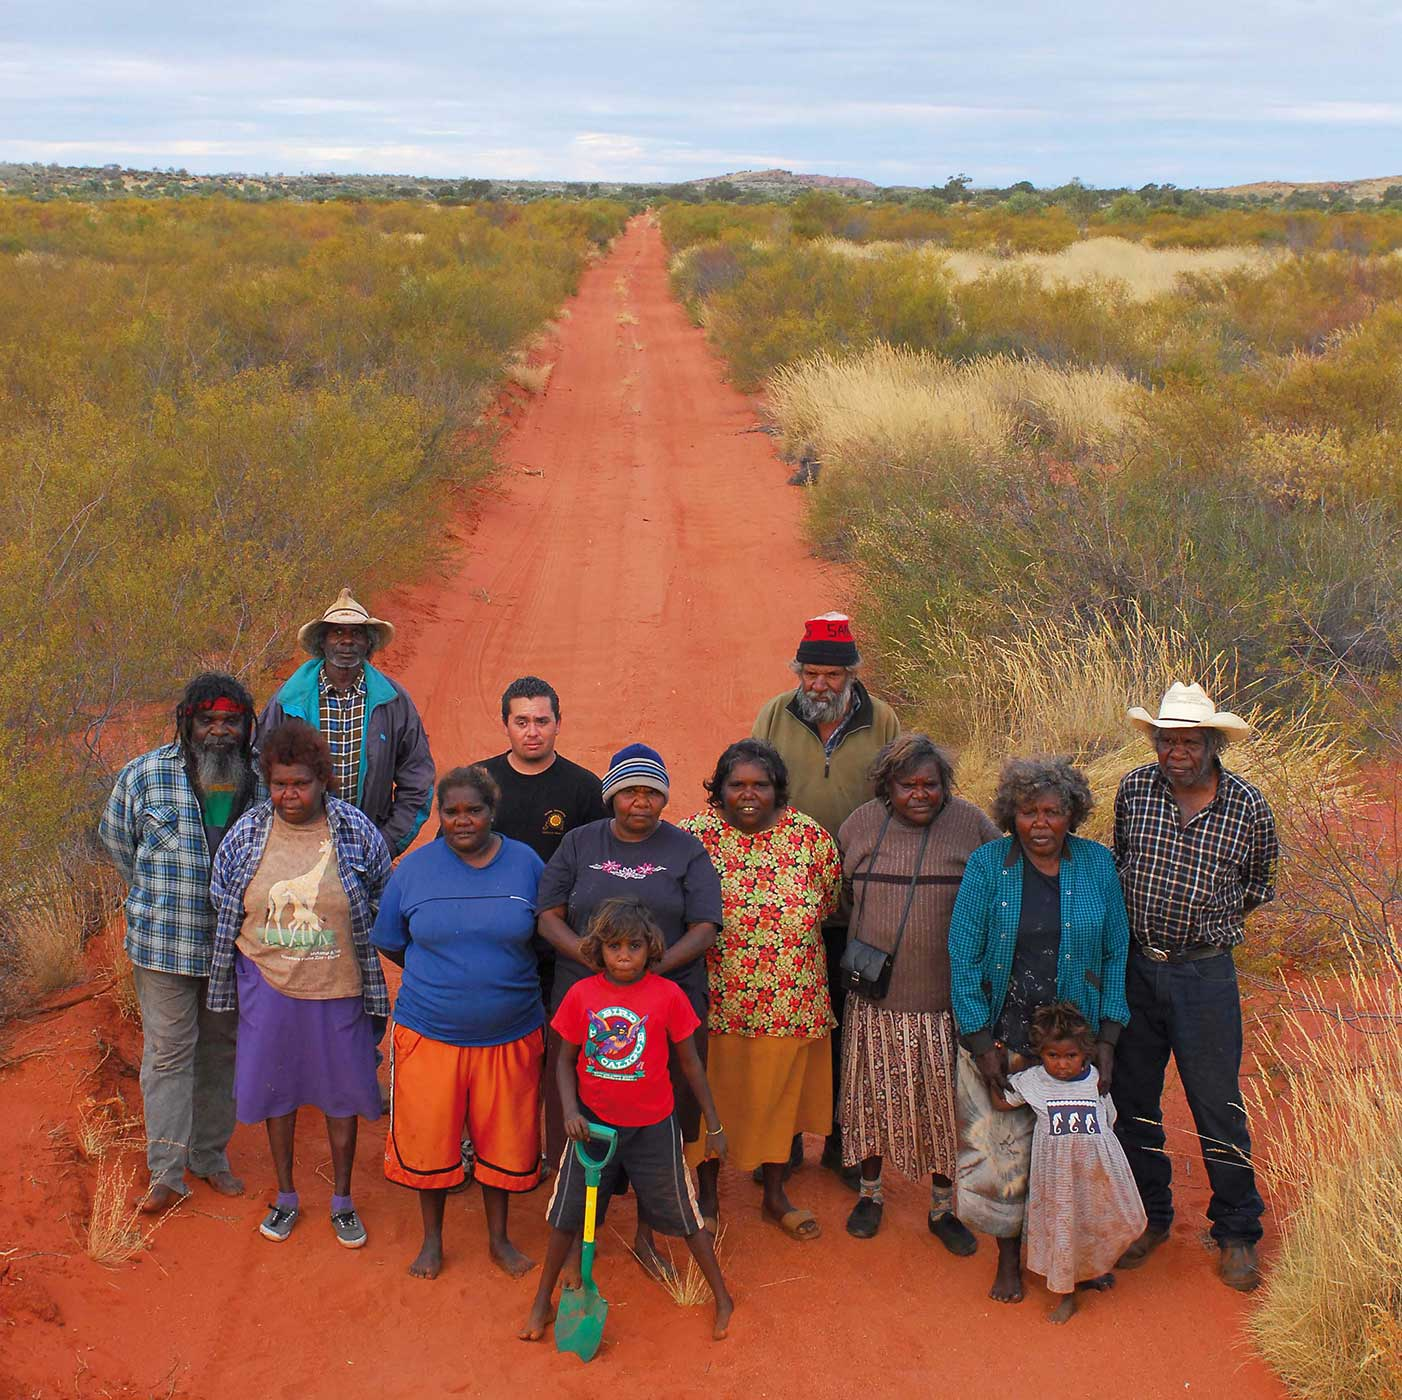 A group shot of people standing on a red dirt road. - click to view larger image